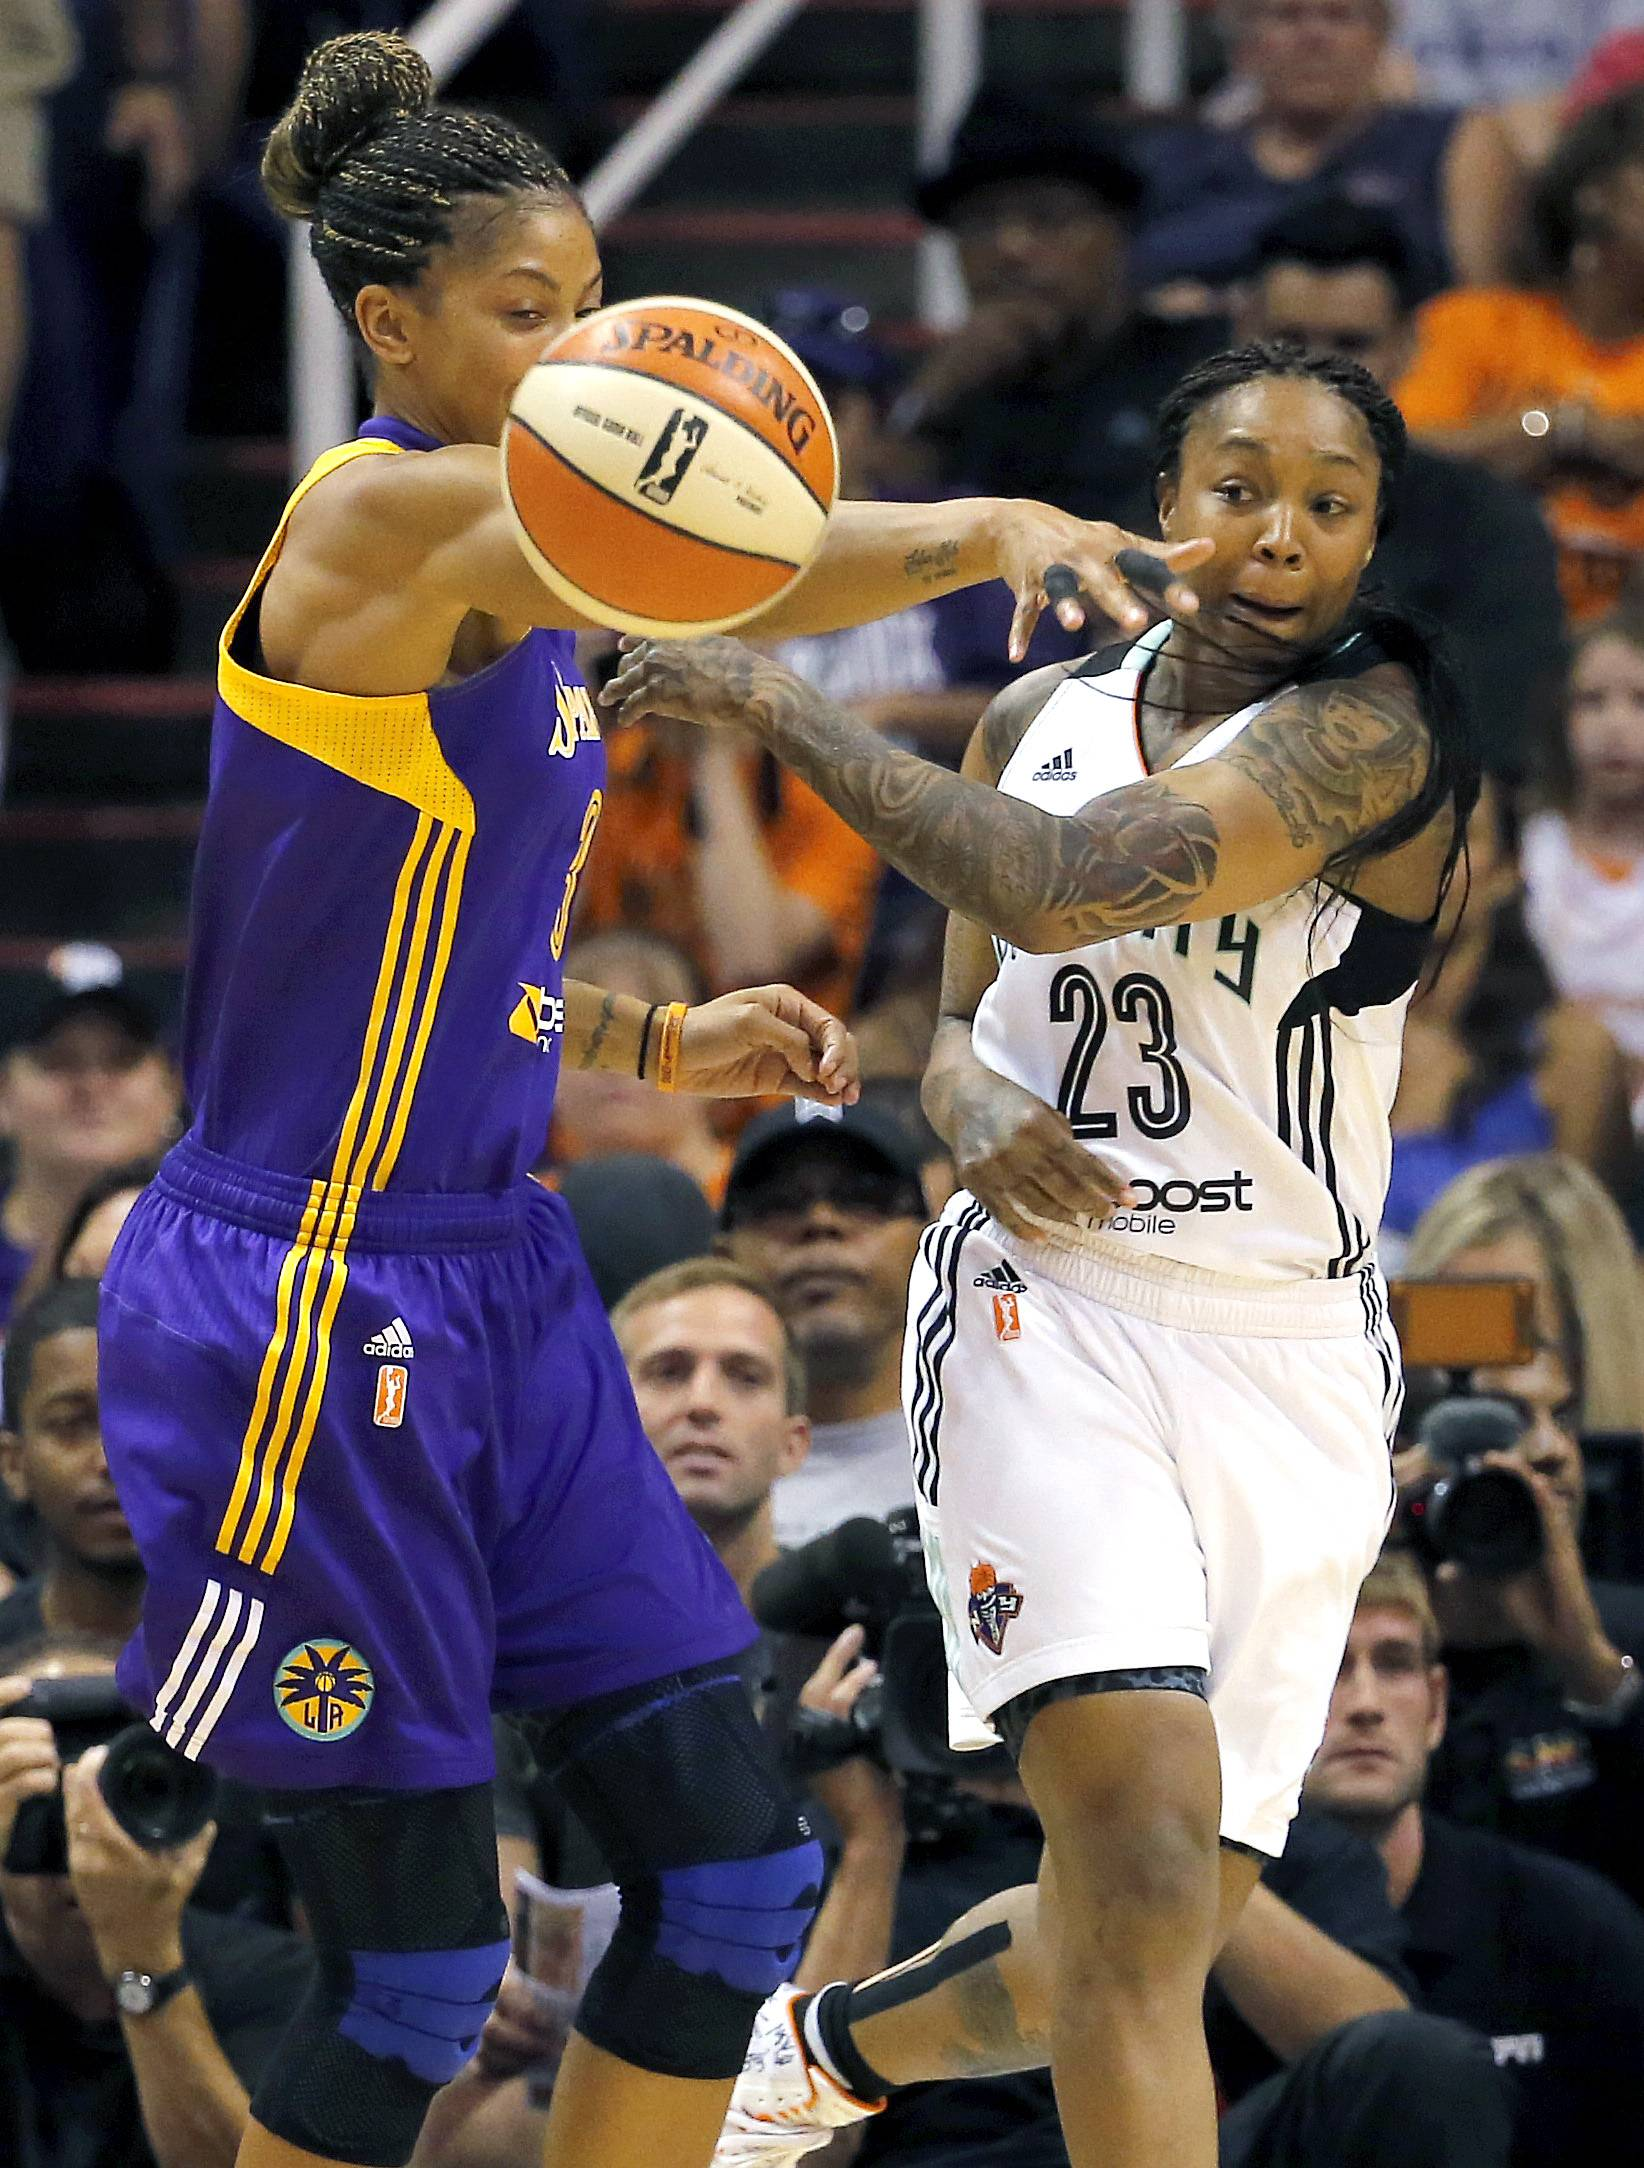 East's Cappie Pondexter, of the New York Liberty, dishes off under pressure from West's Candace Parker, a Naperville native who plays for the Los Angeles Sparks, during the WNBA All-Star basketball game Saturday in Phoenix.